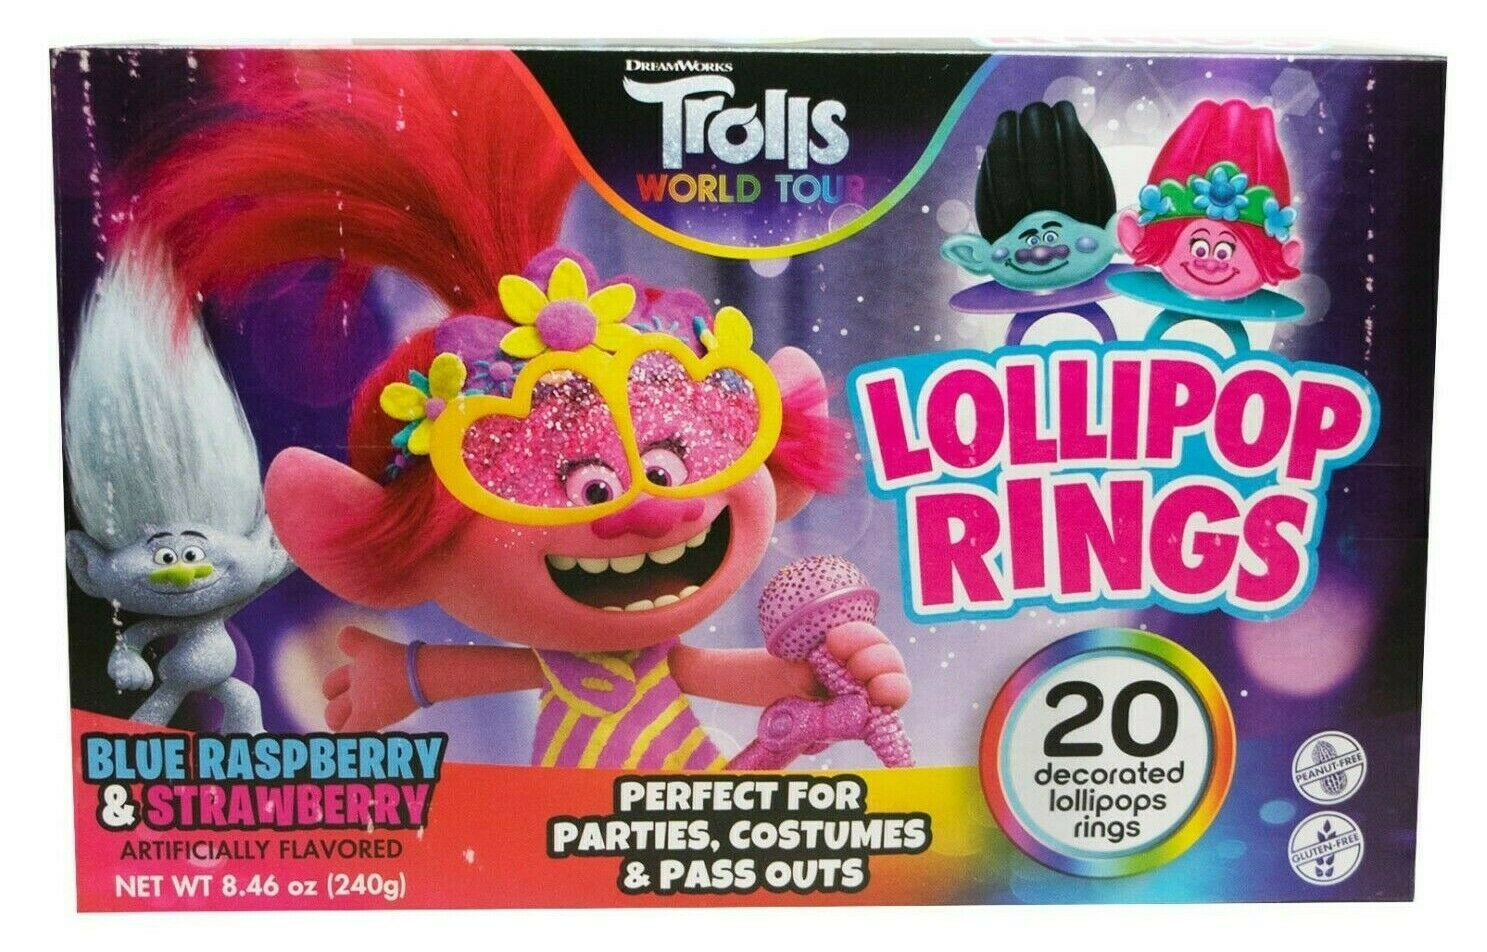 20ct Trolls World Tour Decorated Lollipop Rings Party Favor Candy New in Box